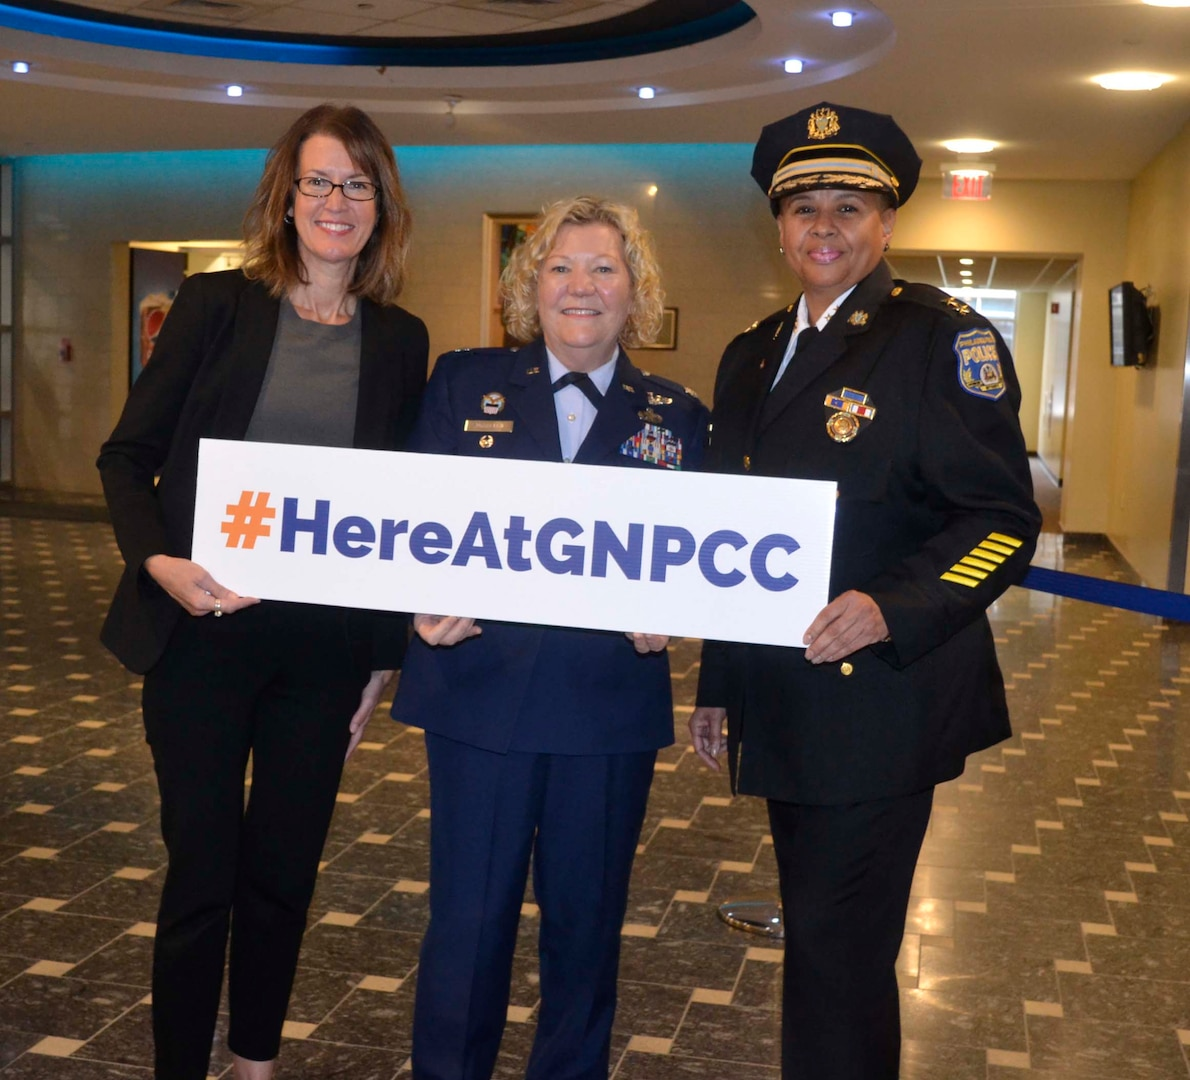 """FBI Special Agent Cerena Coughlin, left, DLA Troop Support Project Manager Air Force Reserve Lt. Col. Susan McMullen, center and City of Philadelphia Police Department Deputy Commissioner Robin Wimberly, right, pose for a photo after the Greater Northeast Philadelphia Chamber of Commerce annual Women in Industry Day event Nov. 20, 2019 at Holy Family University in Philadelphia. The Women in Industry Day event aims to """"broaden the conversation"""" and expose women to various career opportunities. The ladies served as the panelists during the """"women in male-dominated industries"""" discussion. (Photo by Alexandria Brimage-Gray)"""